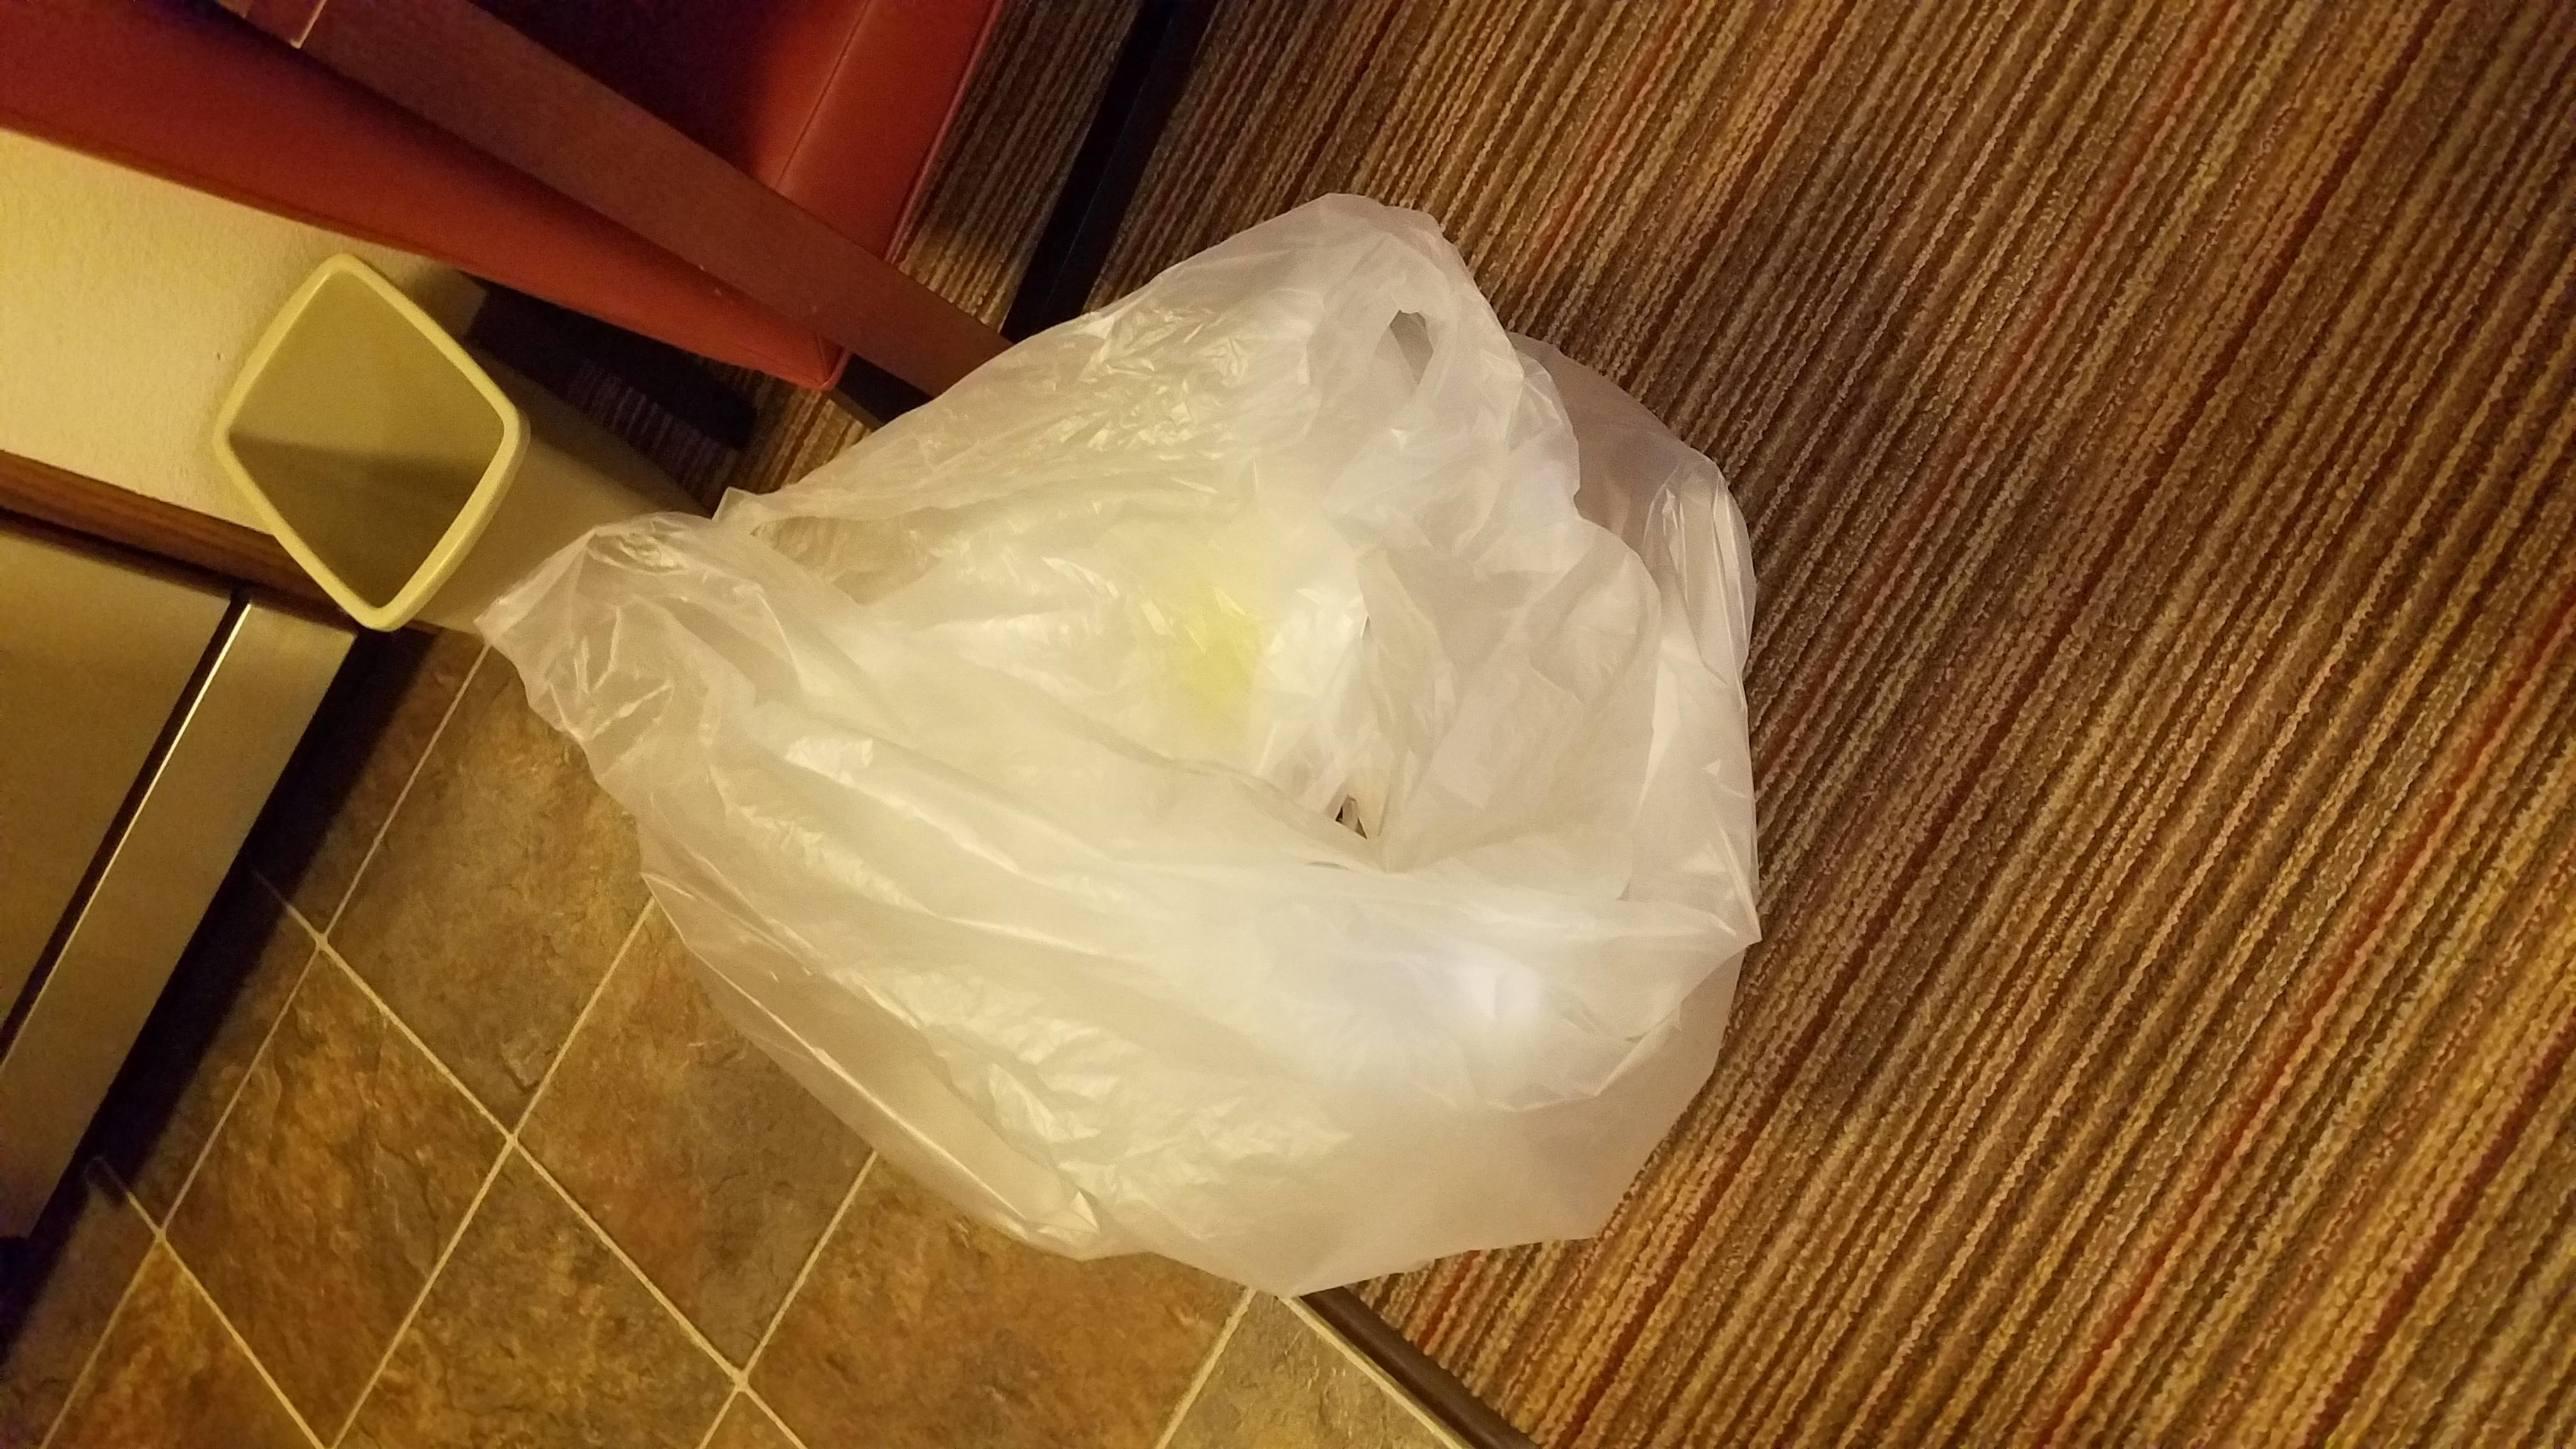 The bag they gave me to empty my own trash